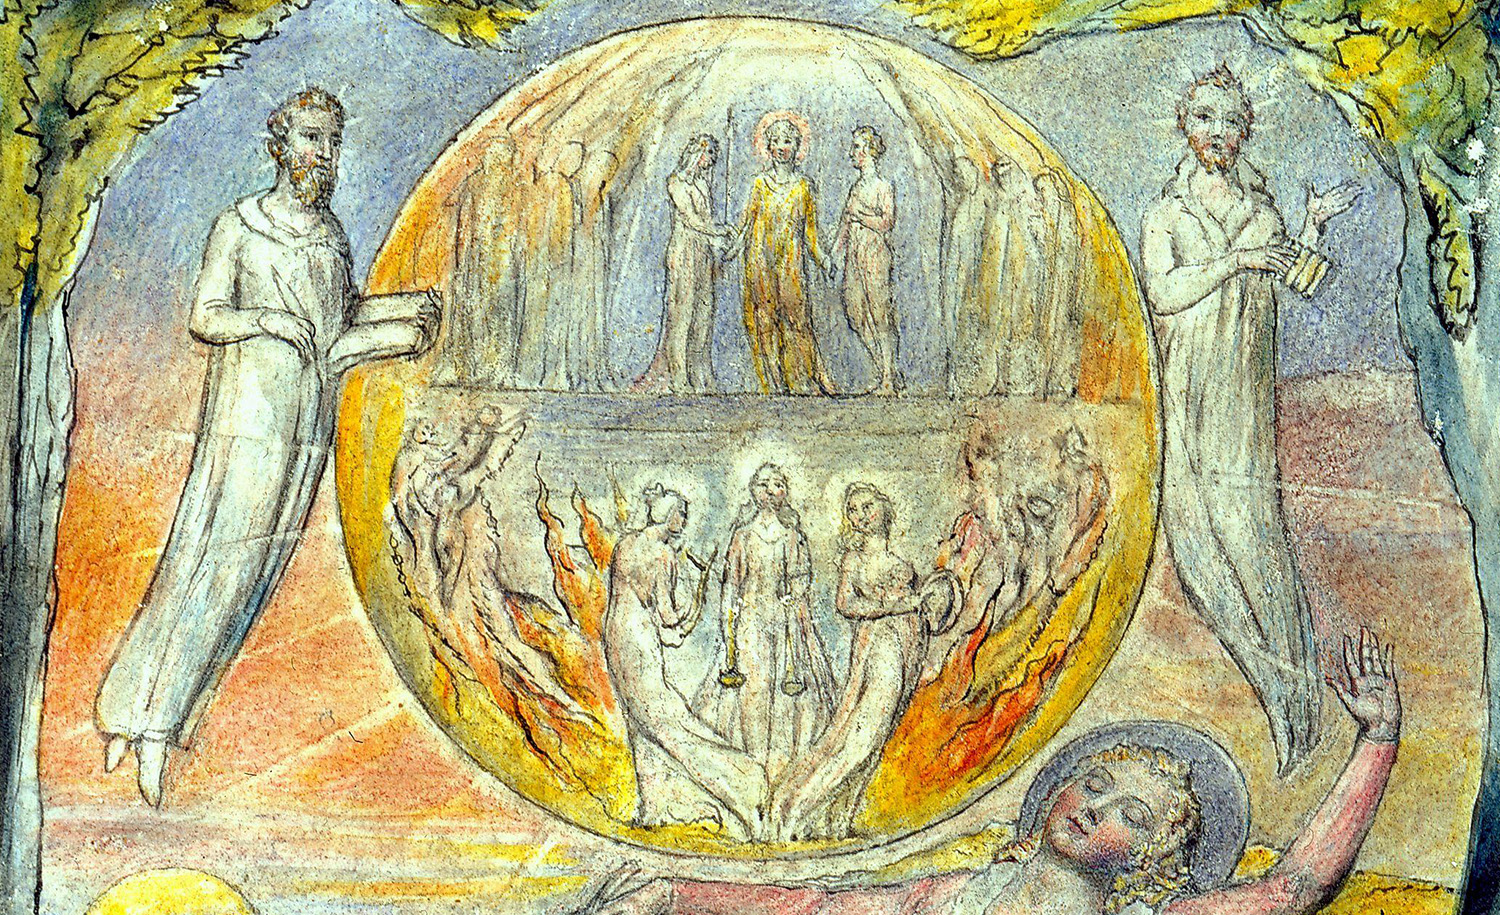 """From """"The Youthful Poet's Dream"""" by William Blake. Wikimedia."""